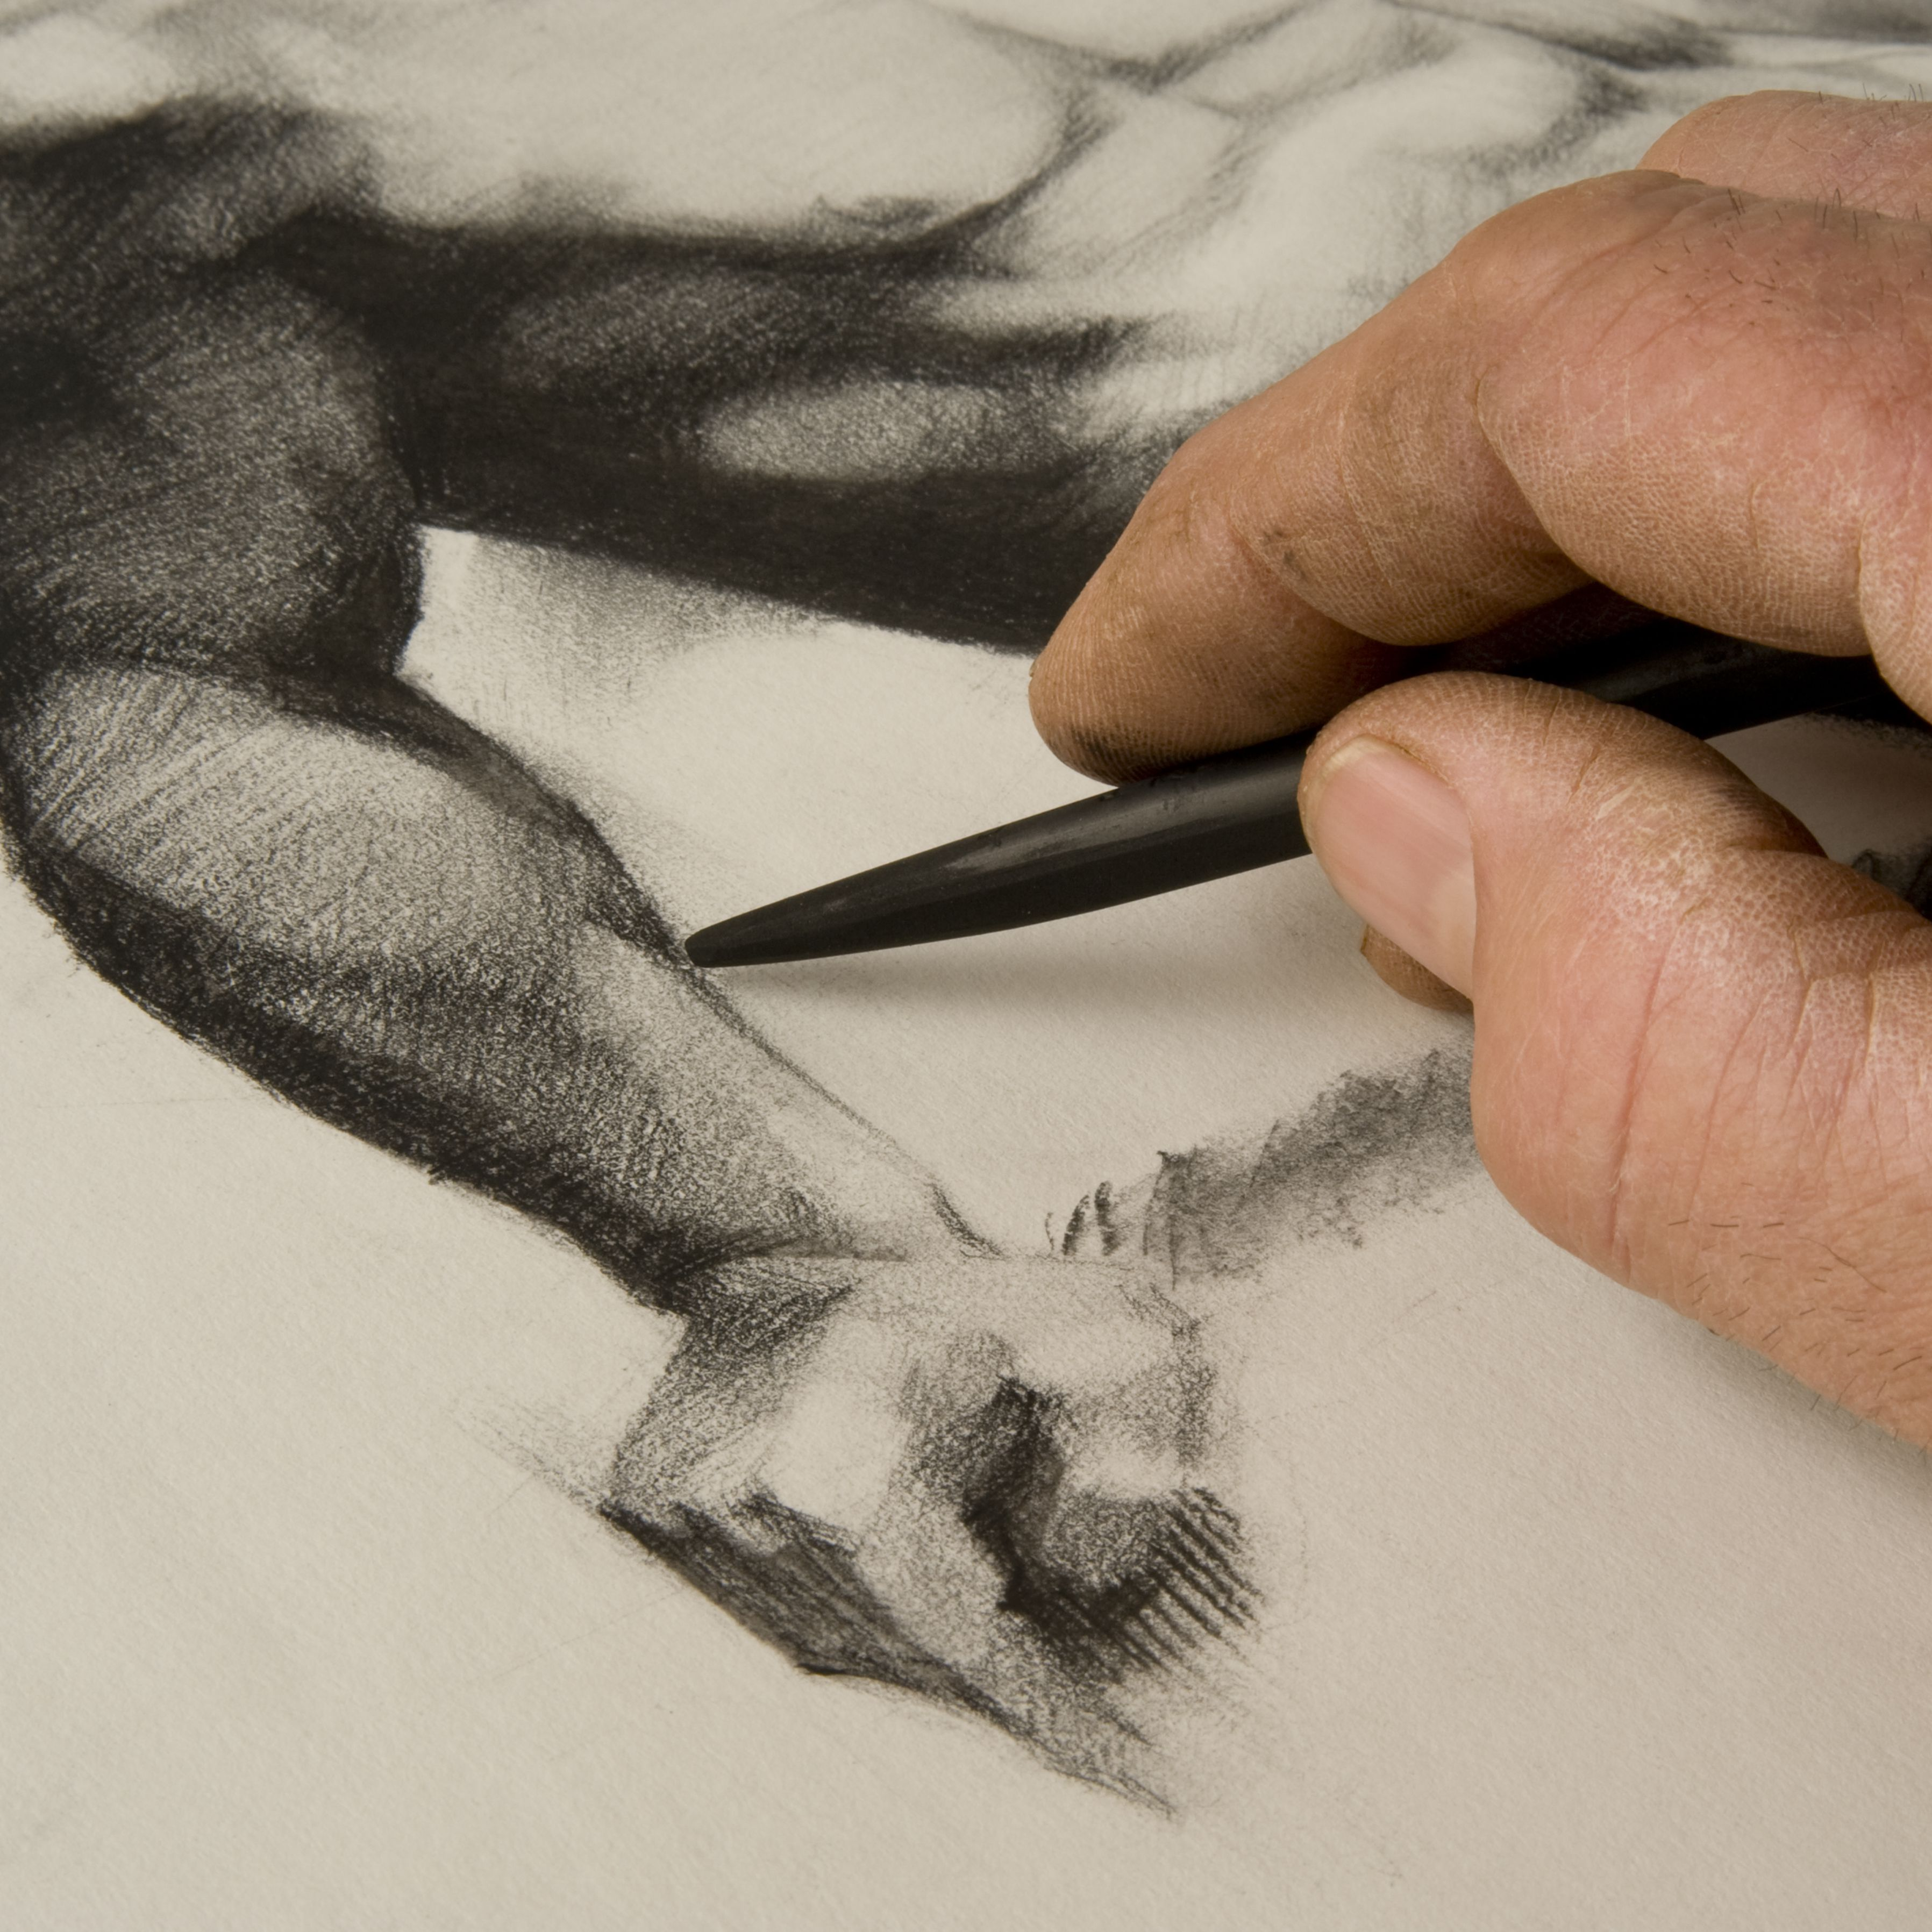 Free online drawing and sketching classes